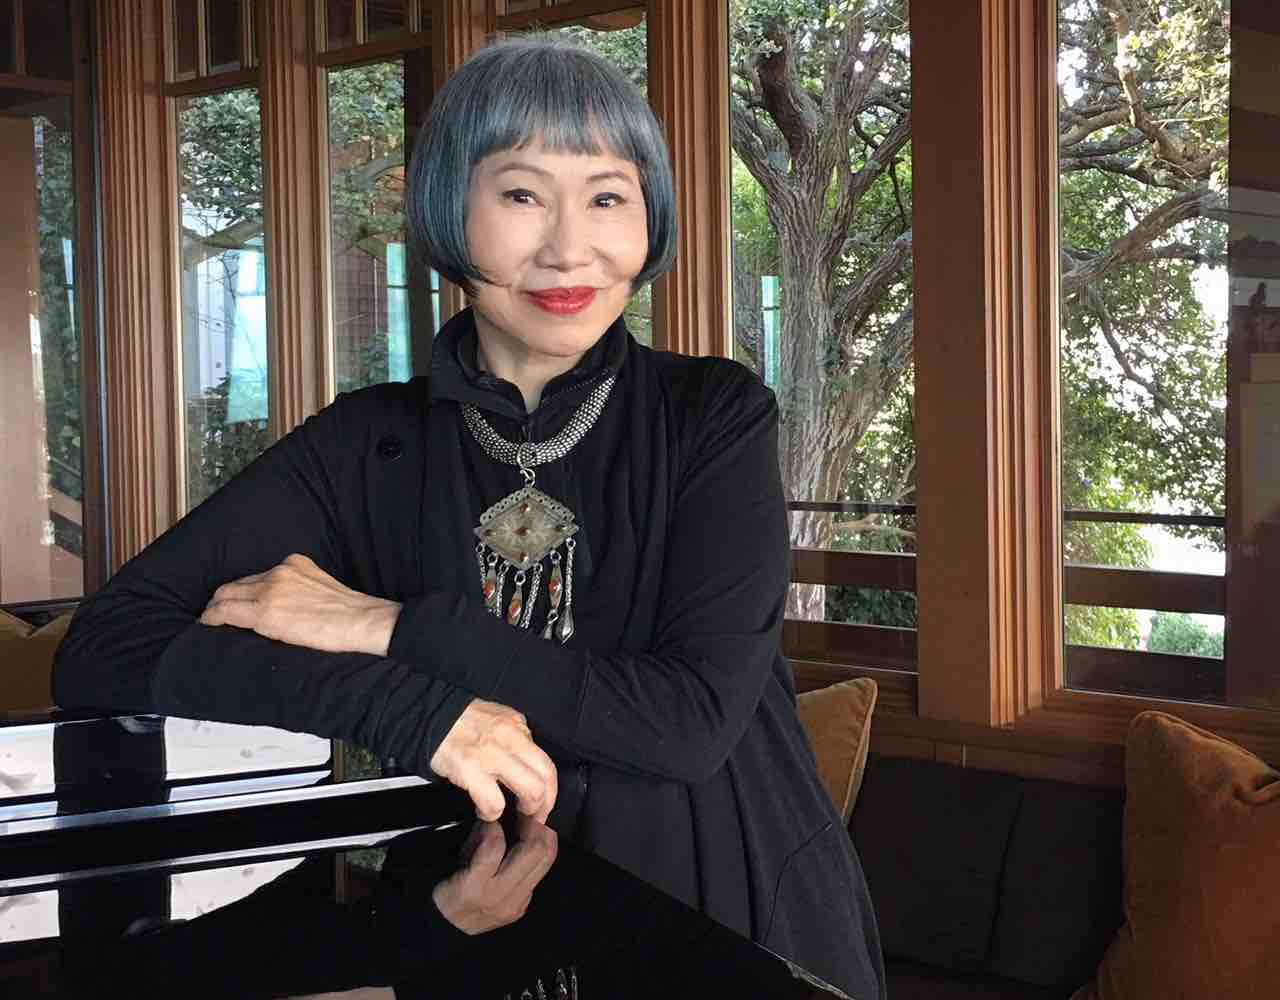 Amy Tan Lyme disease organizations to donate to